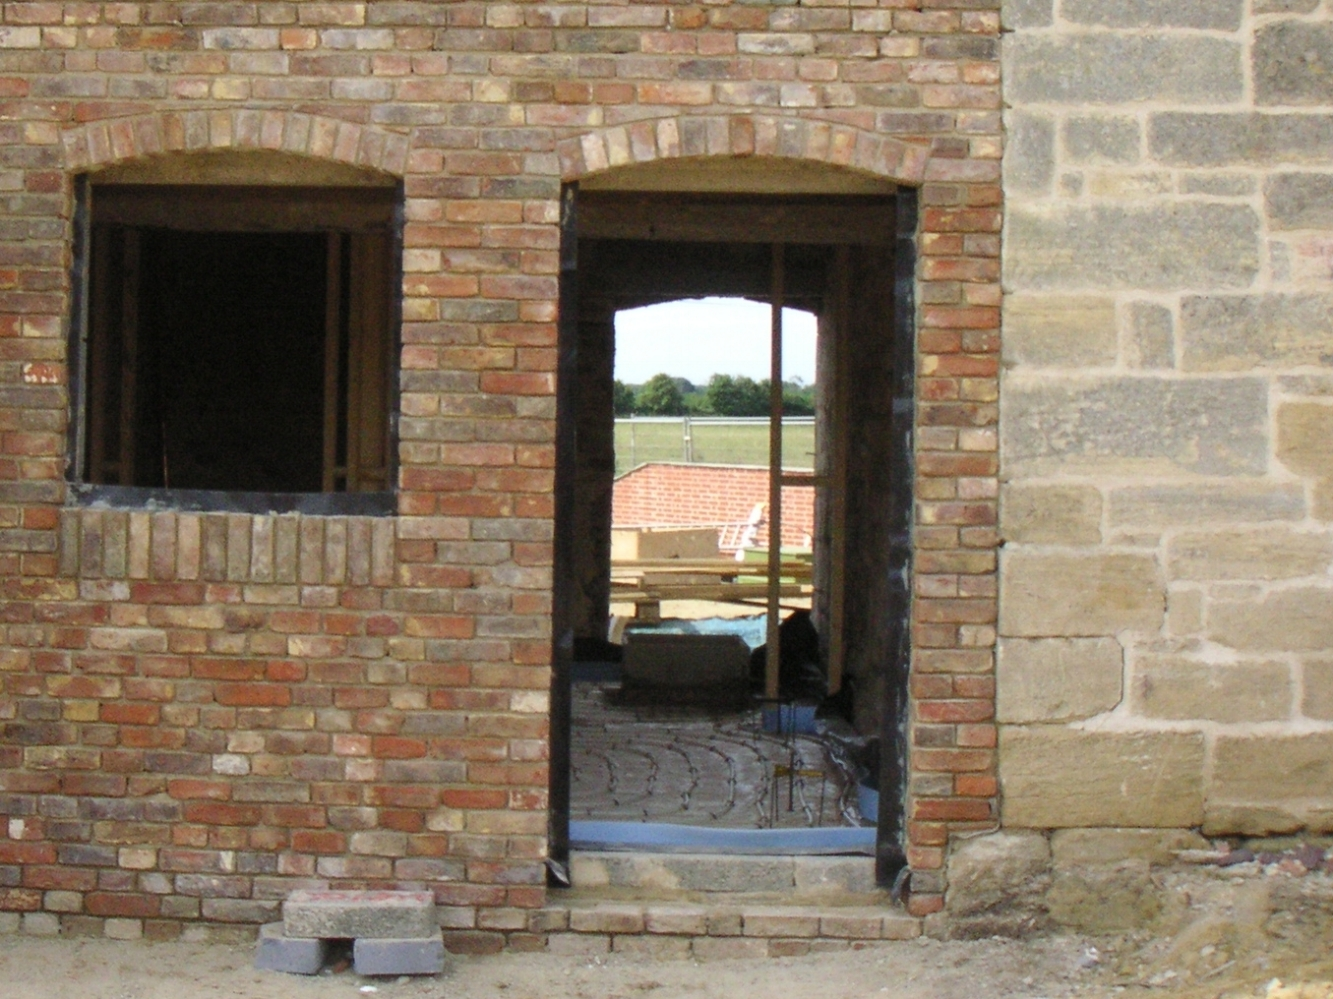 Entrance to barn conversion, repointing and cleaning exterior brick and stone work